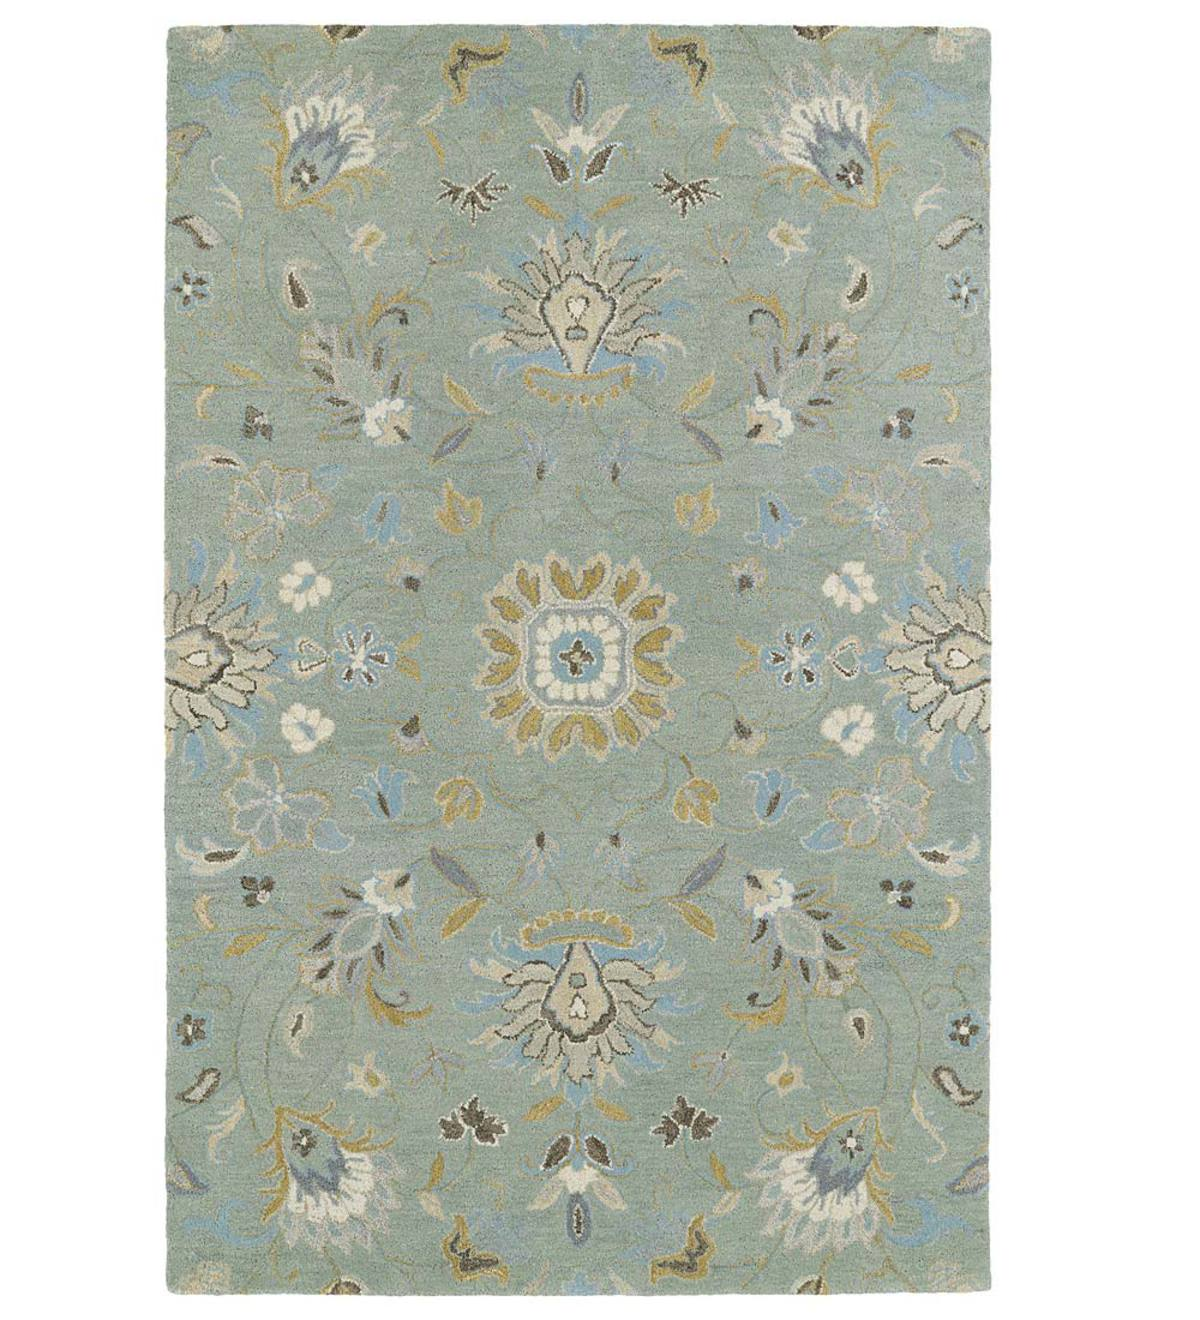 Teal Meadow Floral Vine Wool Rug, 2' x 3' - Mint